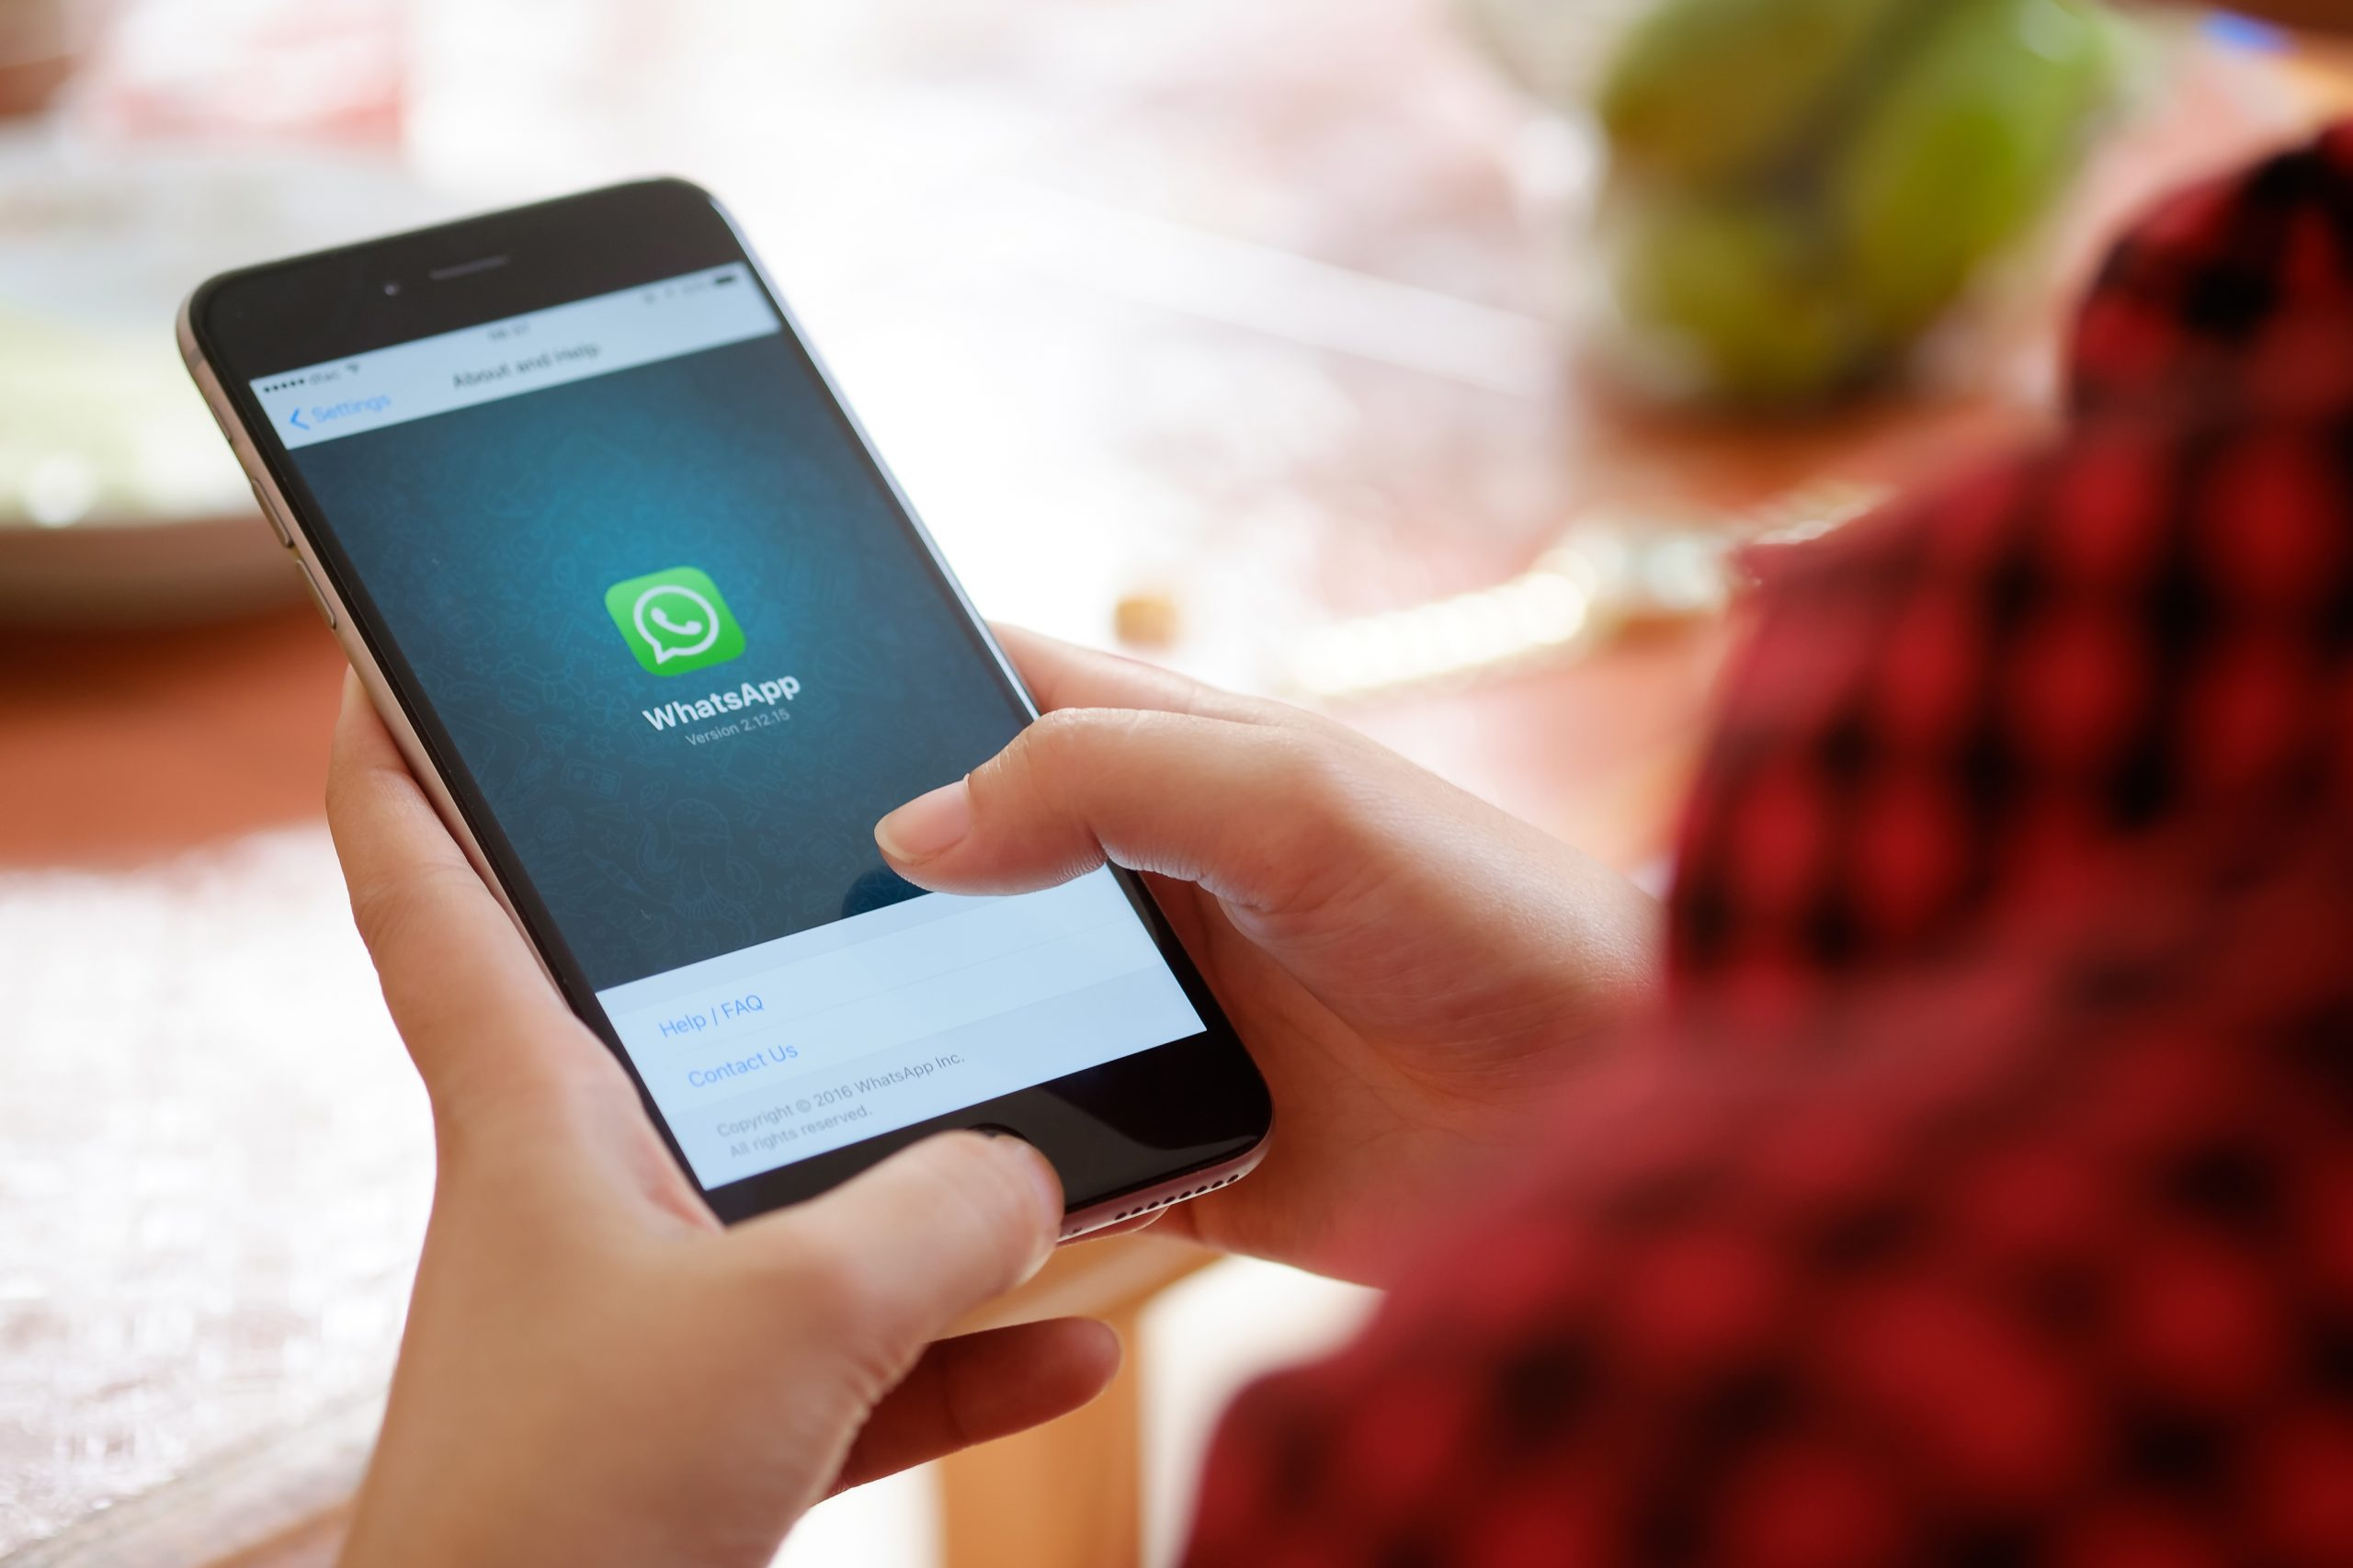 """Alien"", el malware de WhatsApp que la Guardia Civil teme"